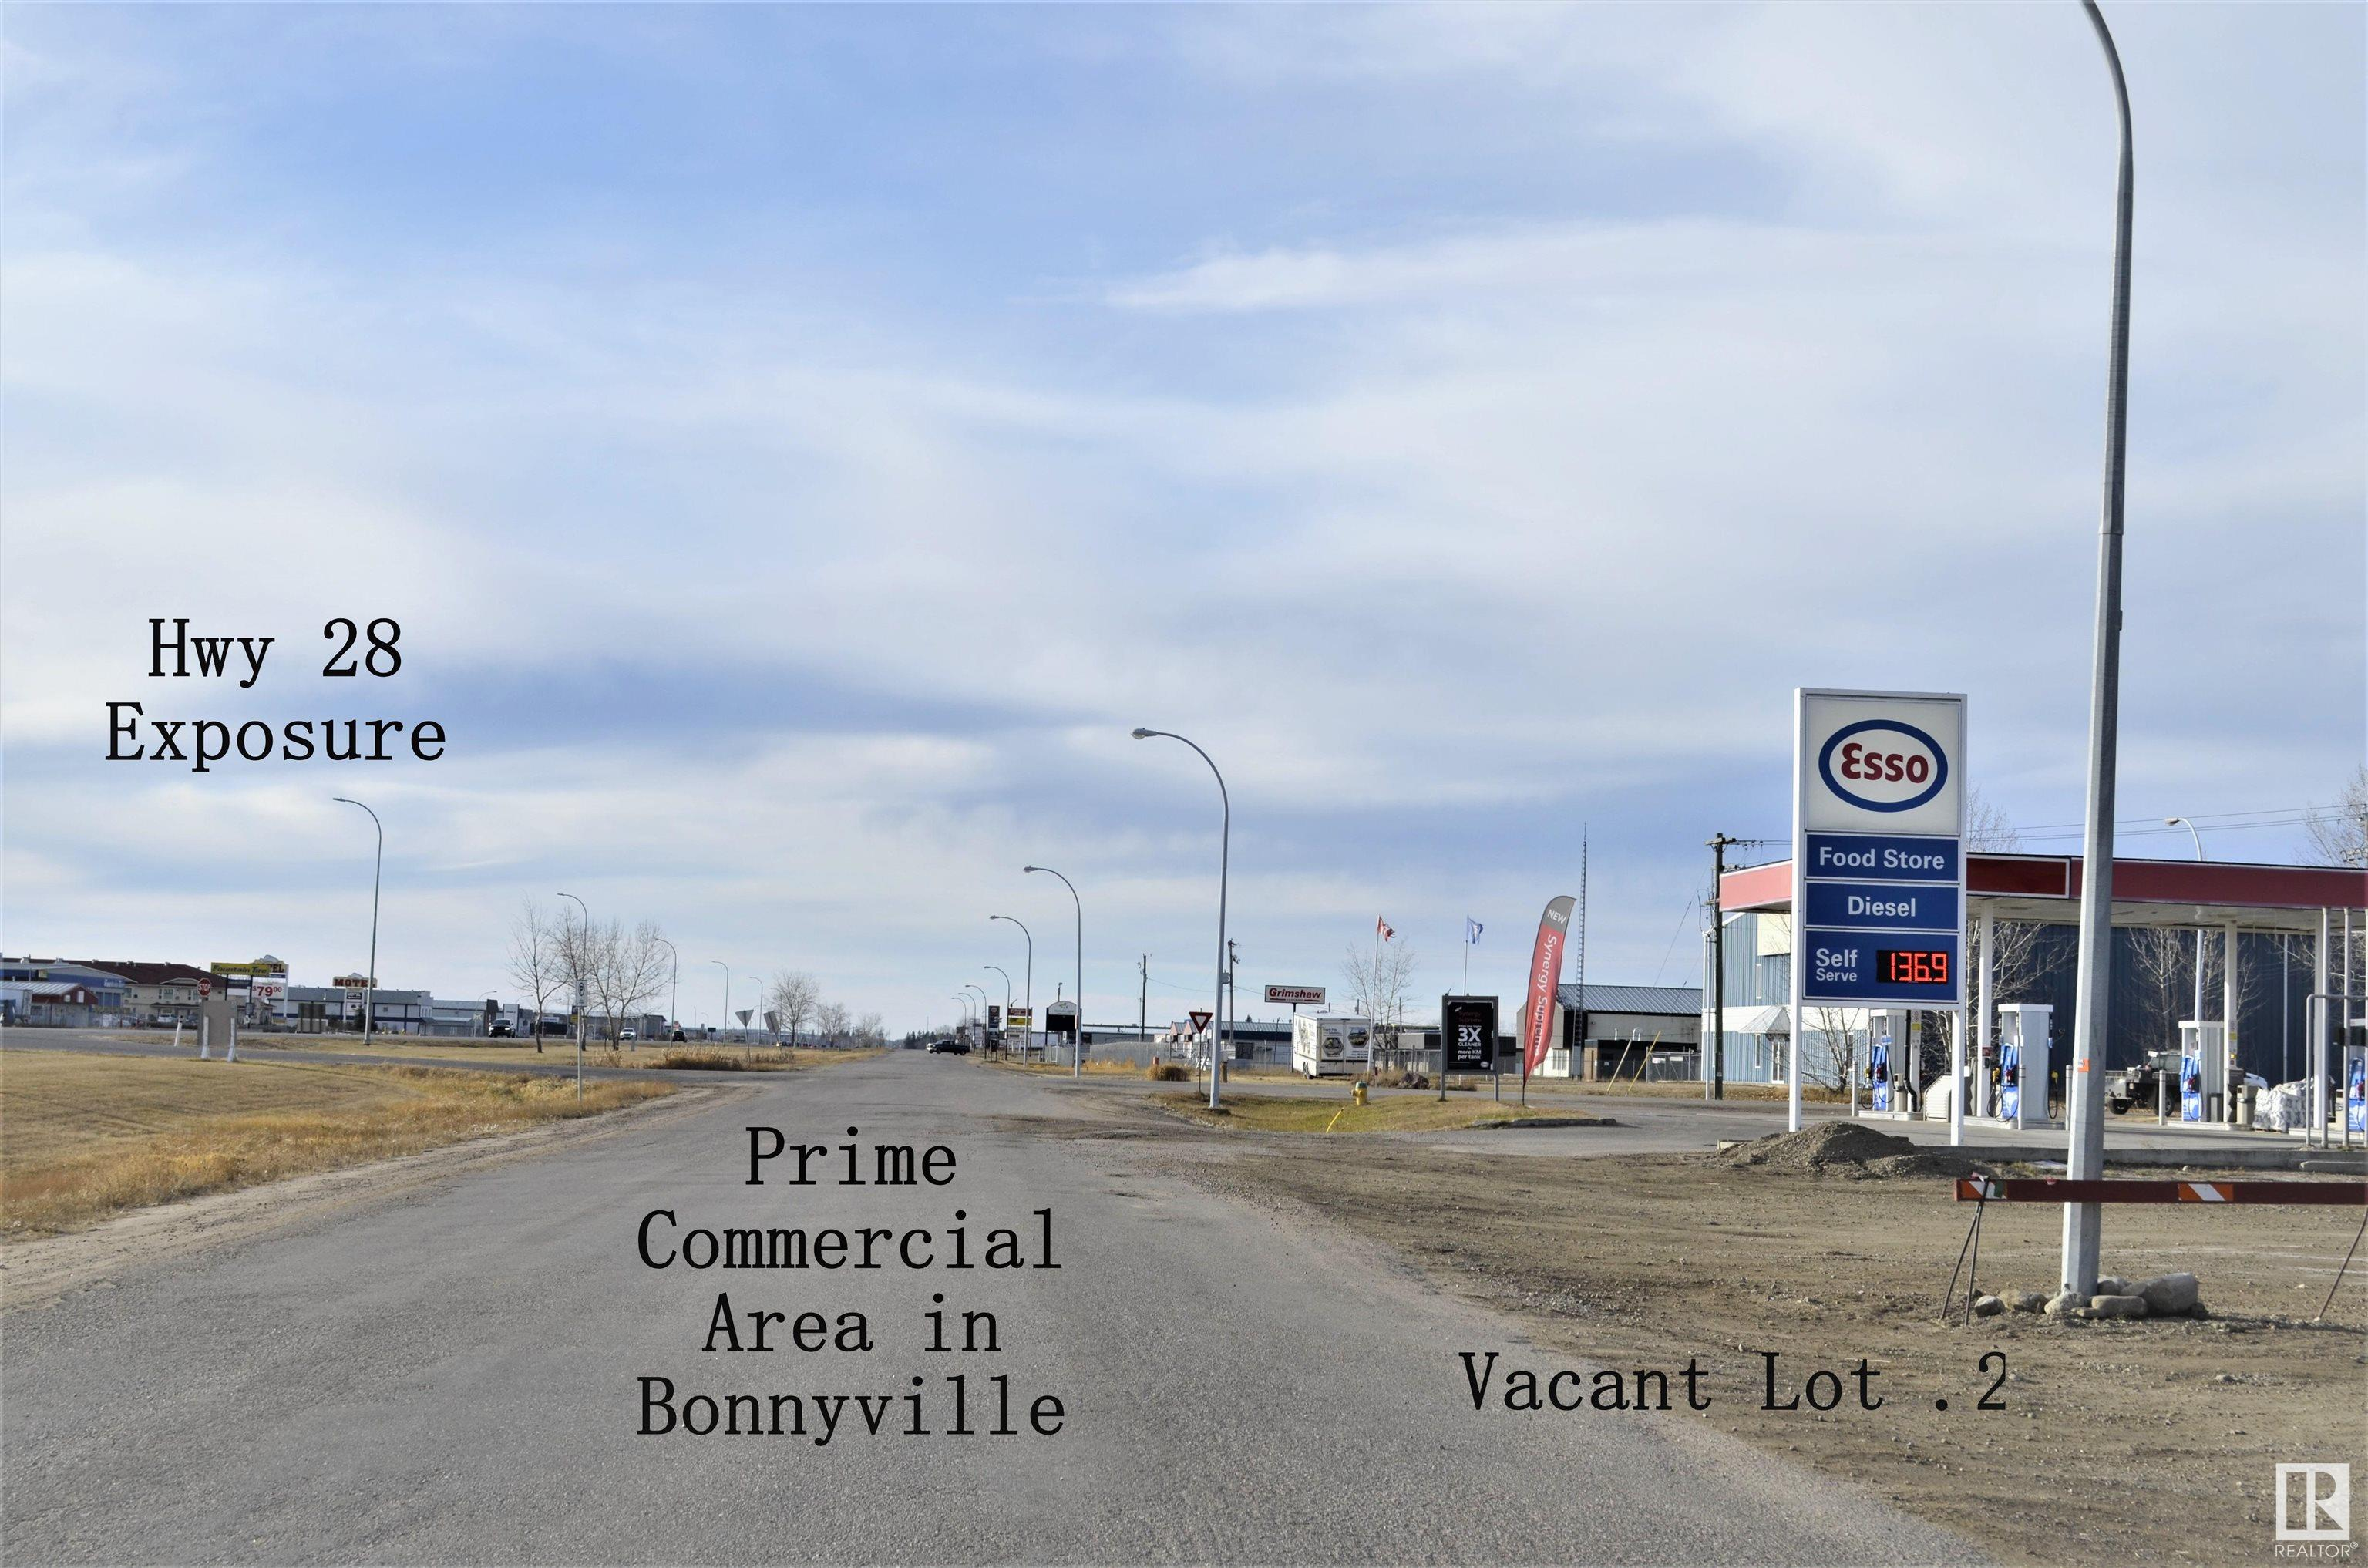 """Located next to the commercial building known as the 'Wetlander"""" which is also for sale. Huge highway 28 / main street exposure, it is a great investment for a variety of businesses to set up on. This vacant lot is located on the 58 St service road coming into Bonnyville adjacent to the ESSO gas station. Fifty feet of high traffic exposure by 200 feet deep. Go direct to view."""